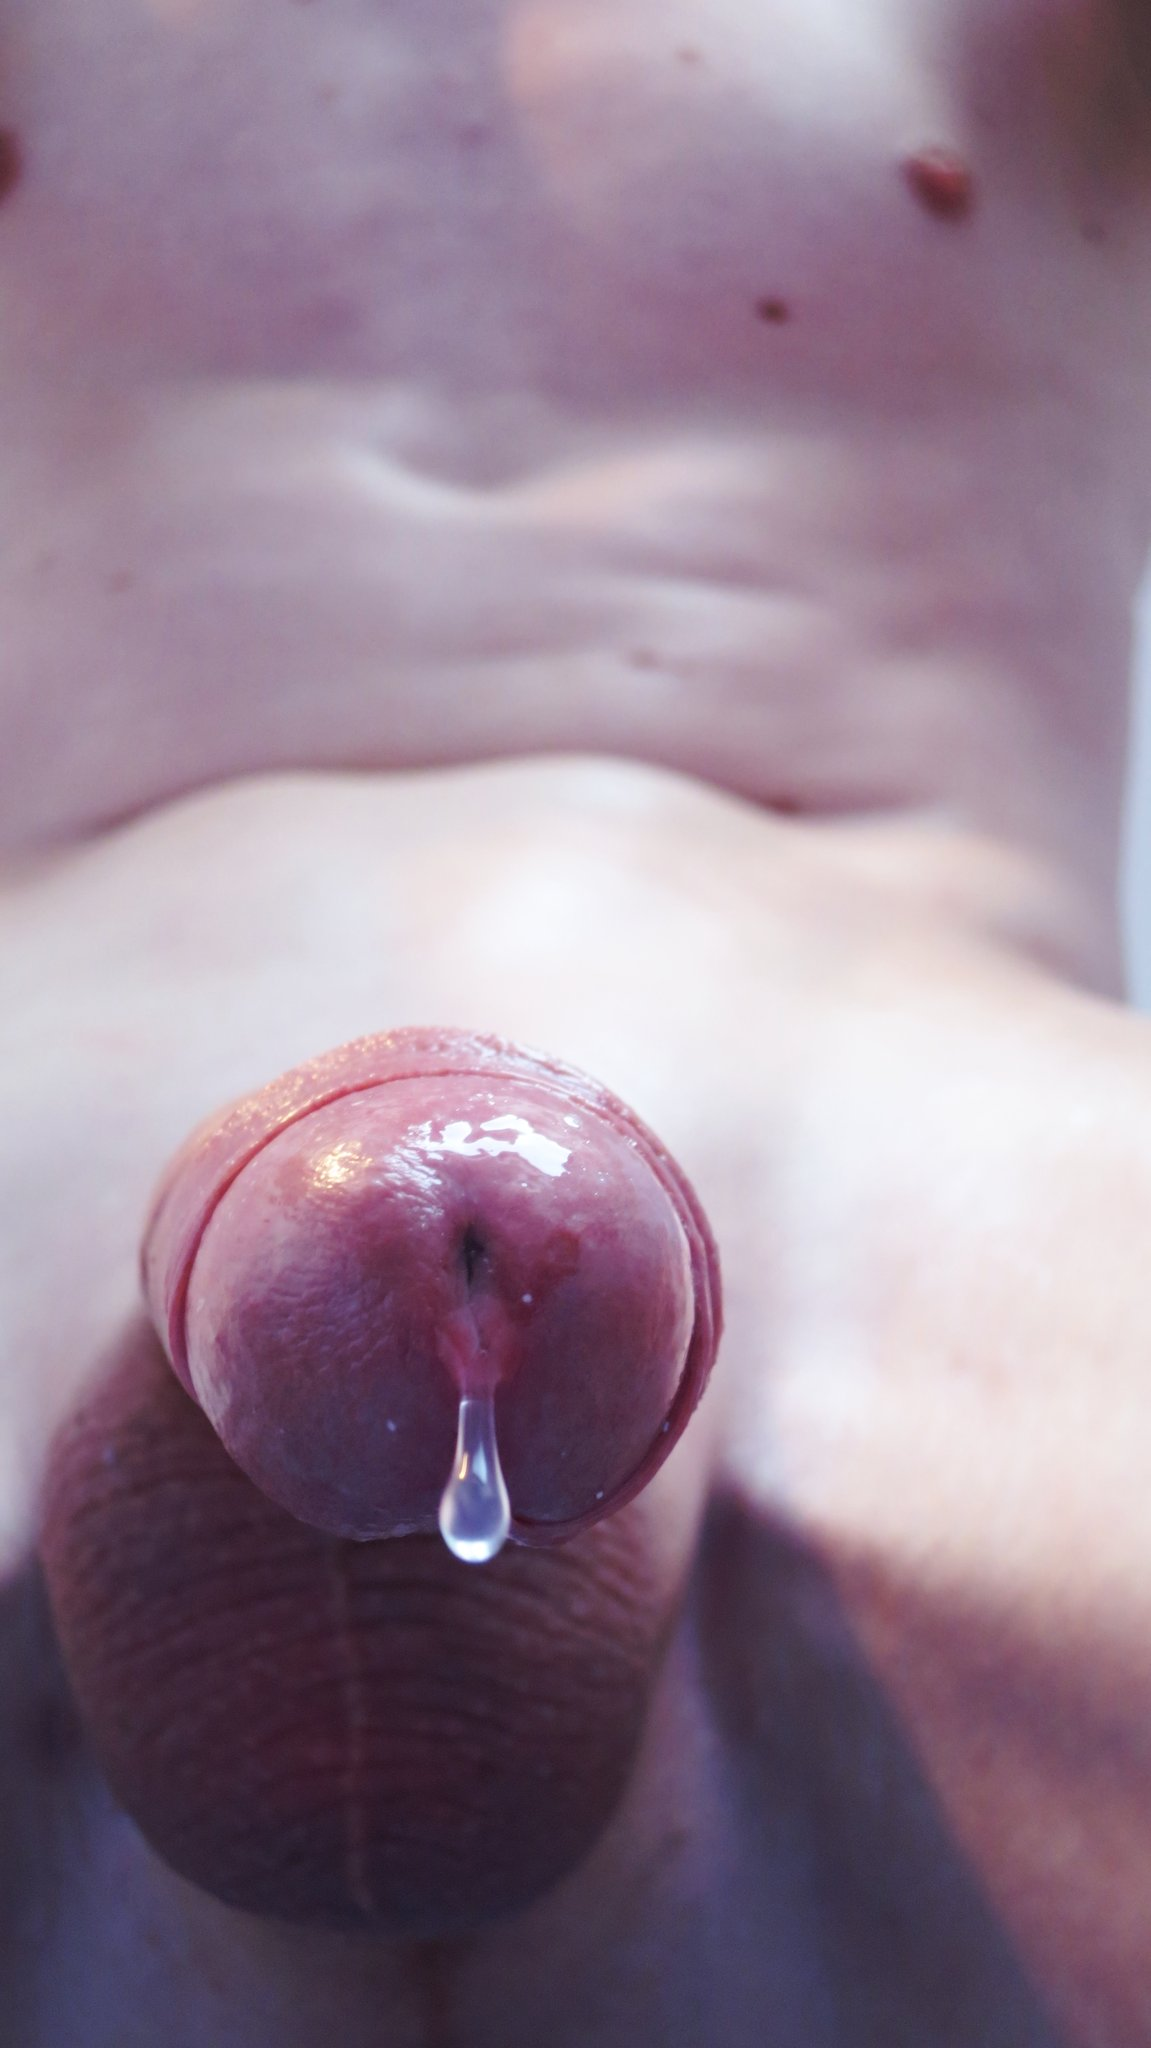 Lots of precum